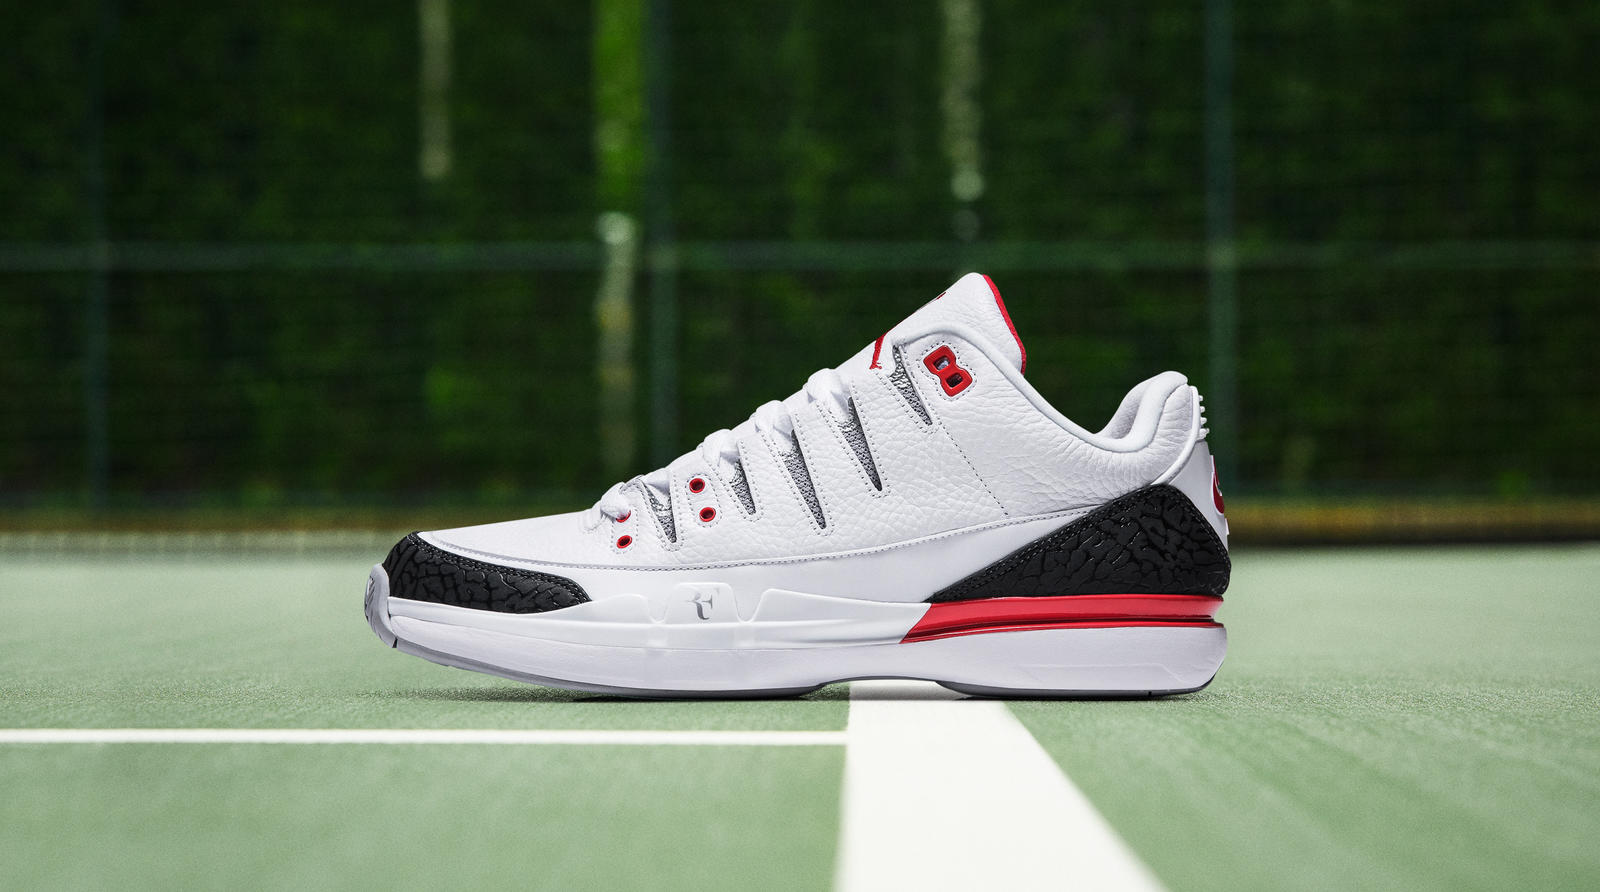 Tennis icon Roger Federer's style and New York City's sneaker culture  collide in the Nike Zoom Air Jordan 3, featured at the first-ever five-day  RF19 Pop-Up ...